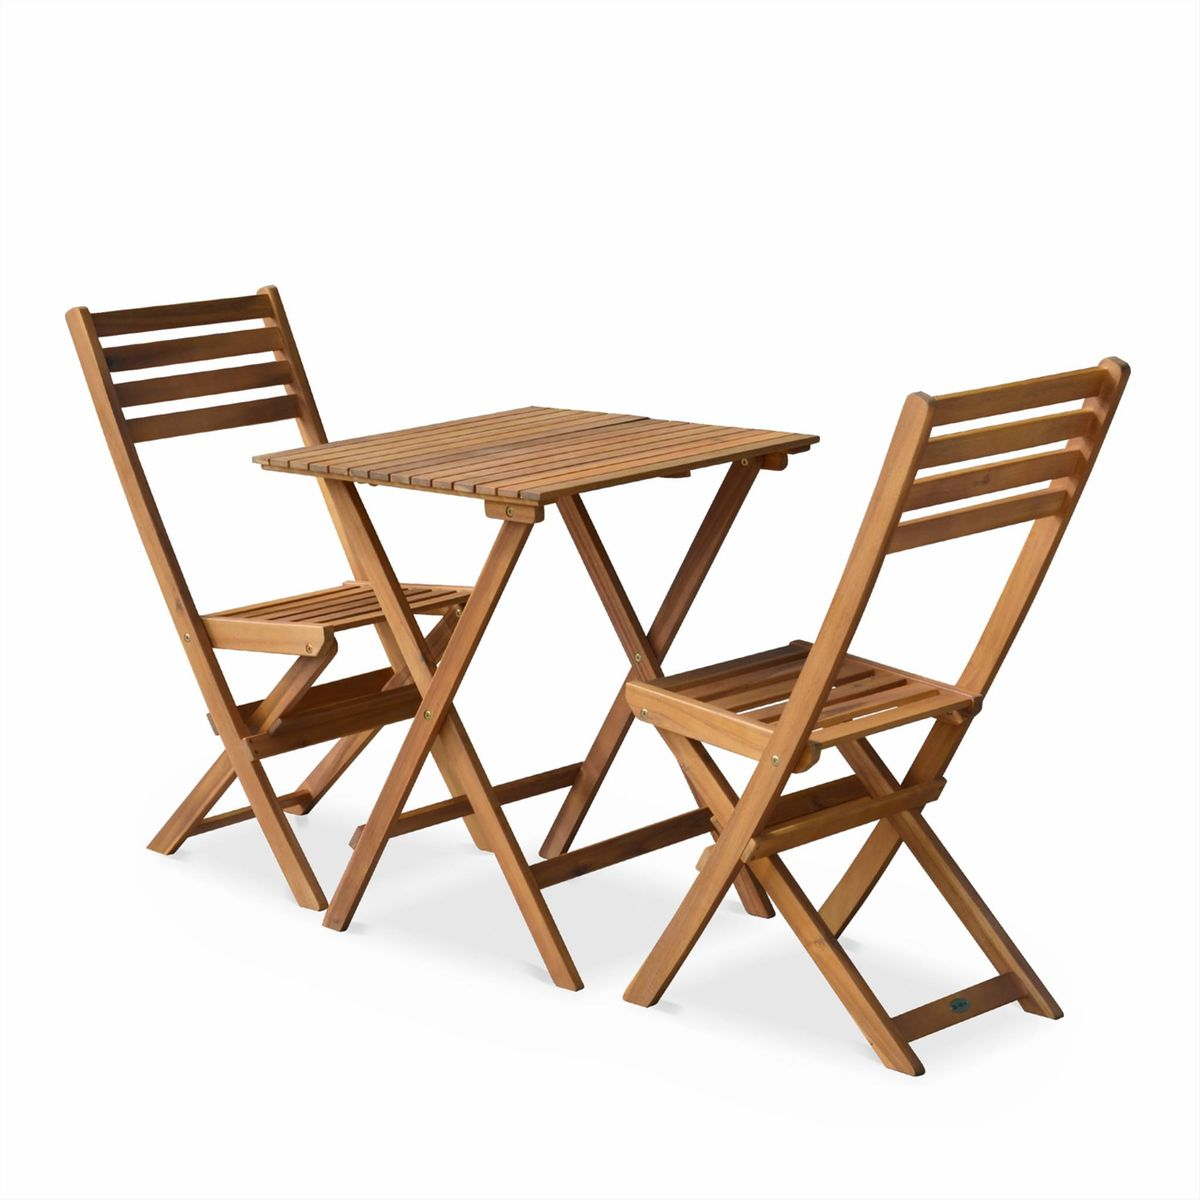 Table Bistrot 4 Personnes Beau Alice S Garden Salon De Jardin En Bois Extensible Of 24 Inspirant Table Bistrot 4 Personnes